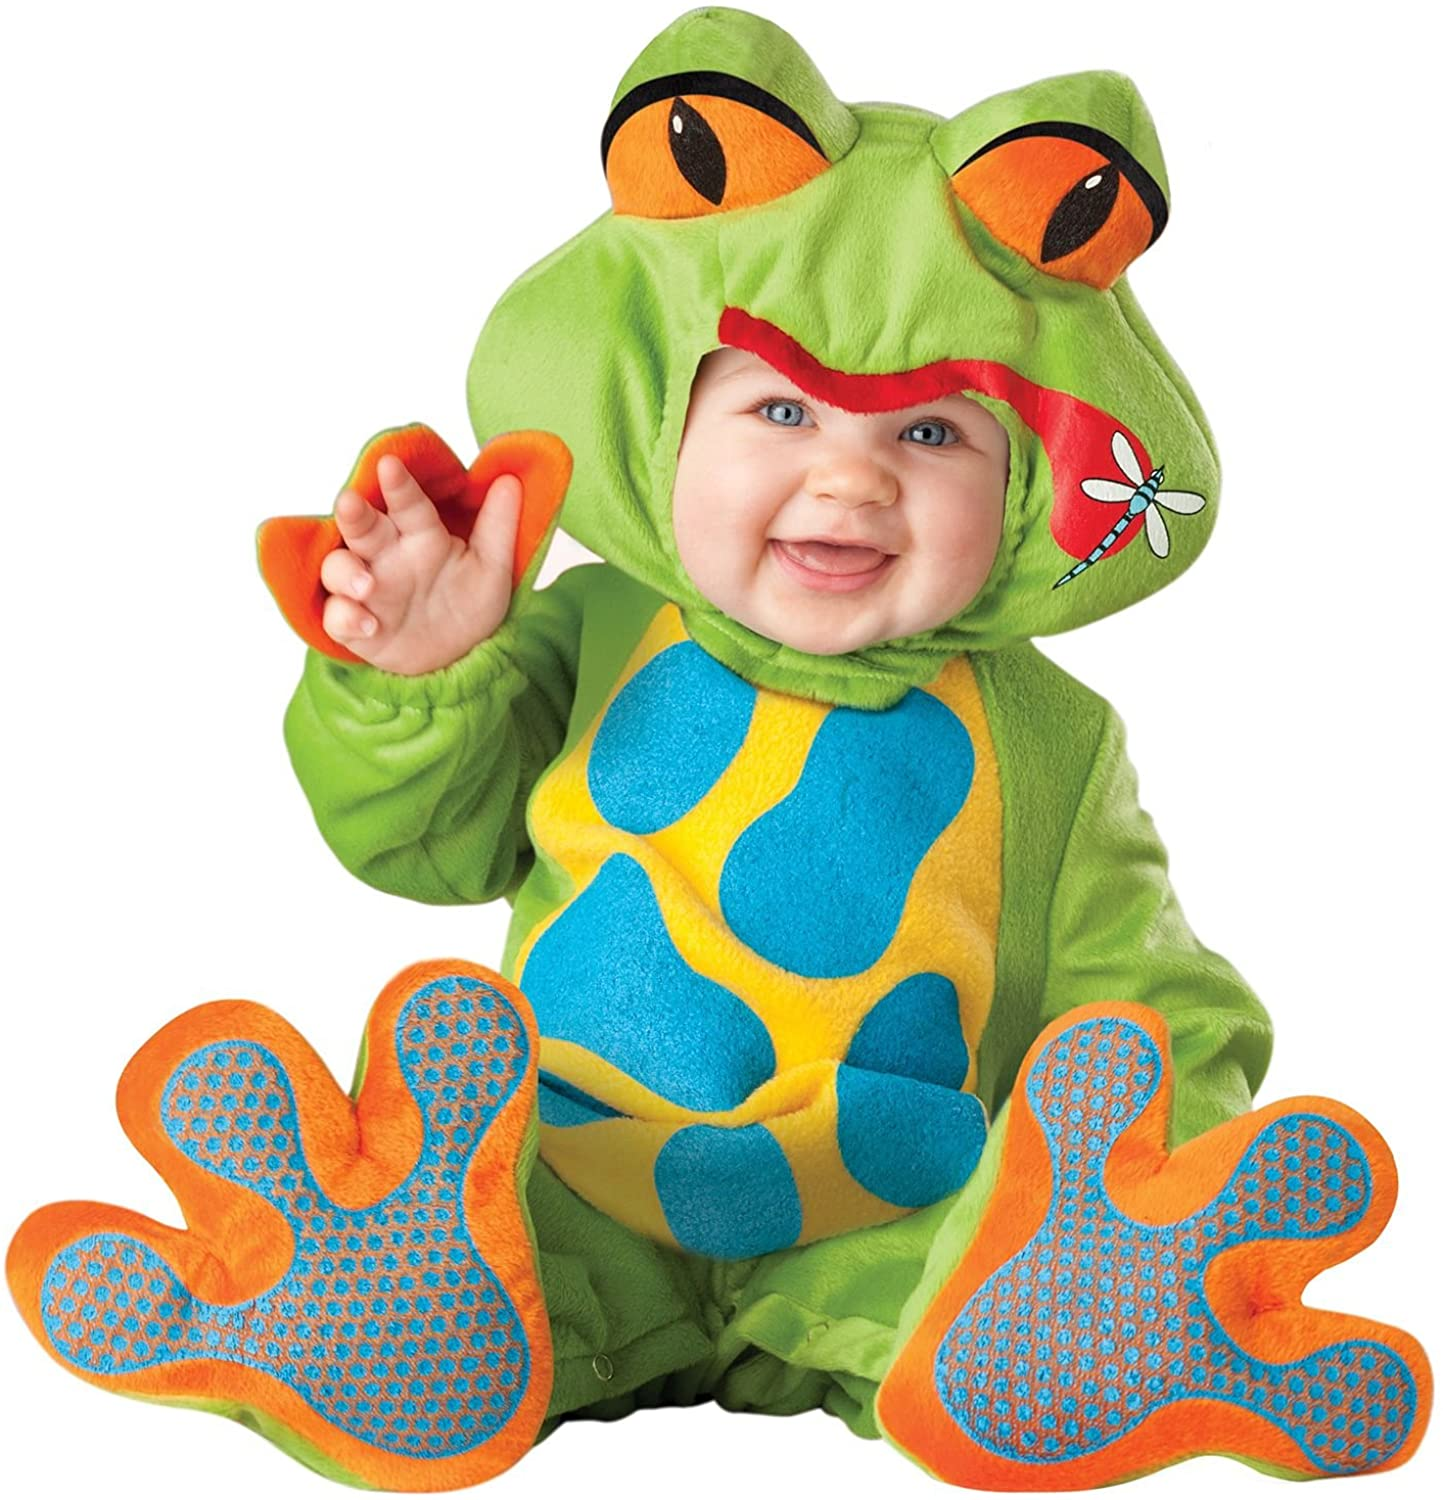 Lil Froggy Costume Green - Infant Small (6-12Months)